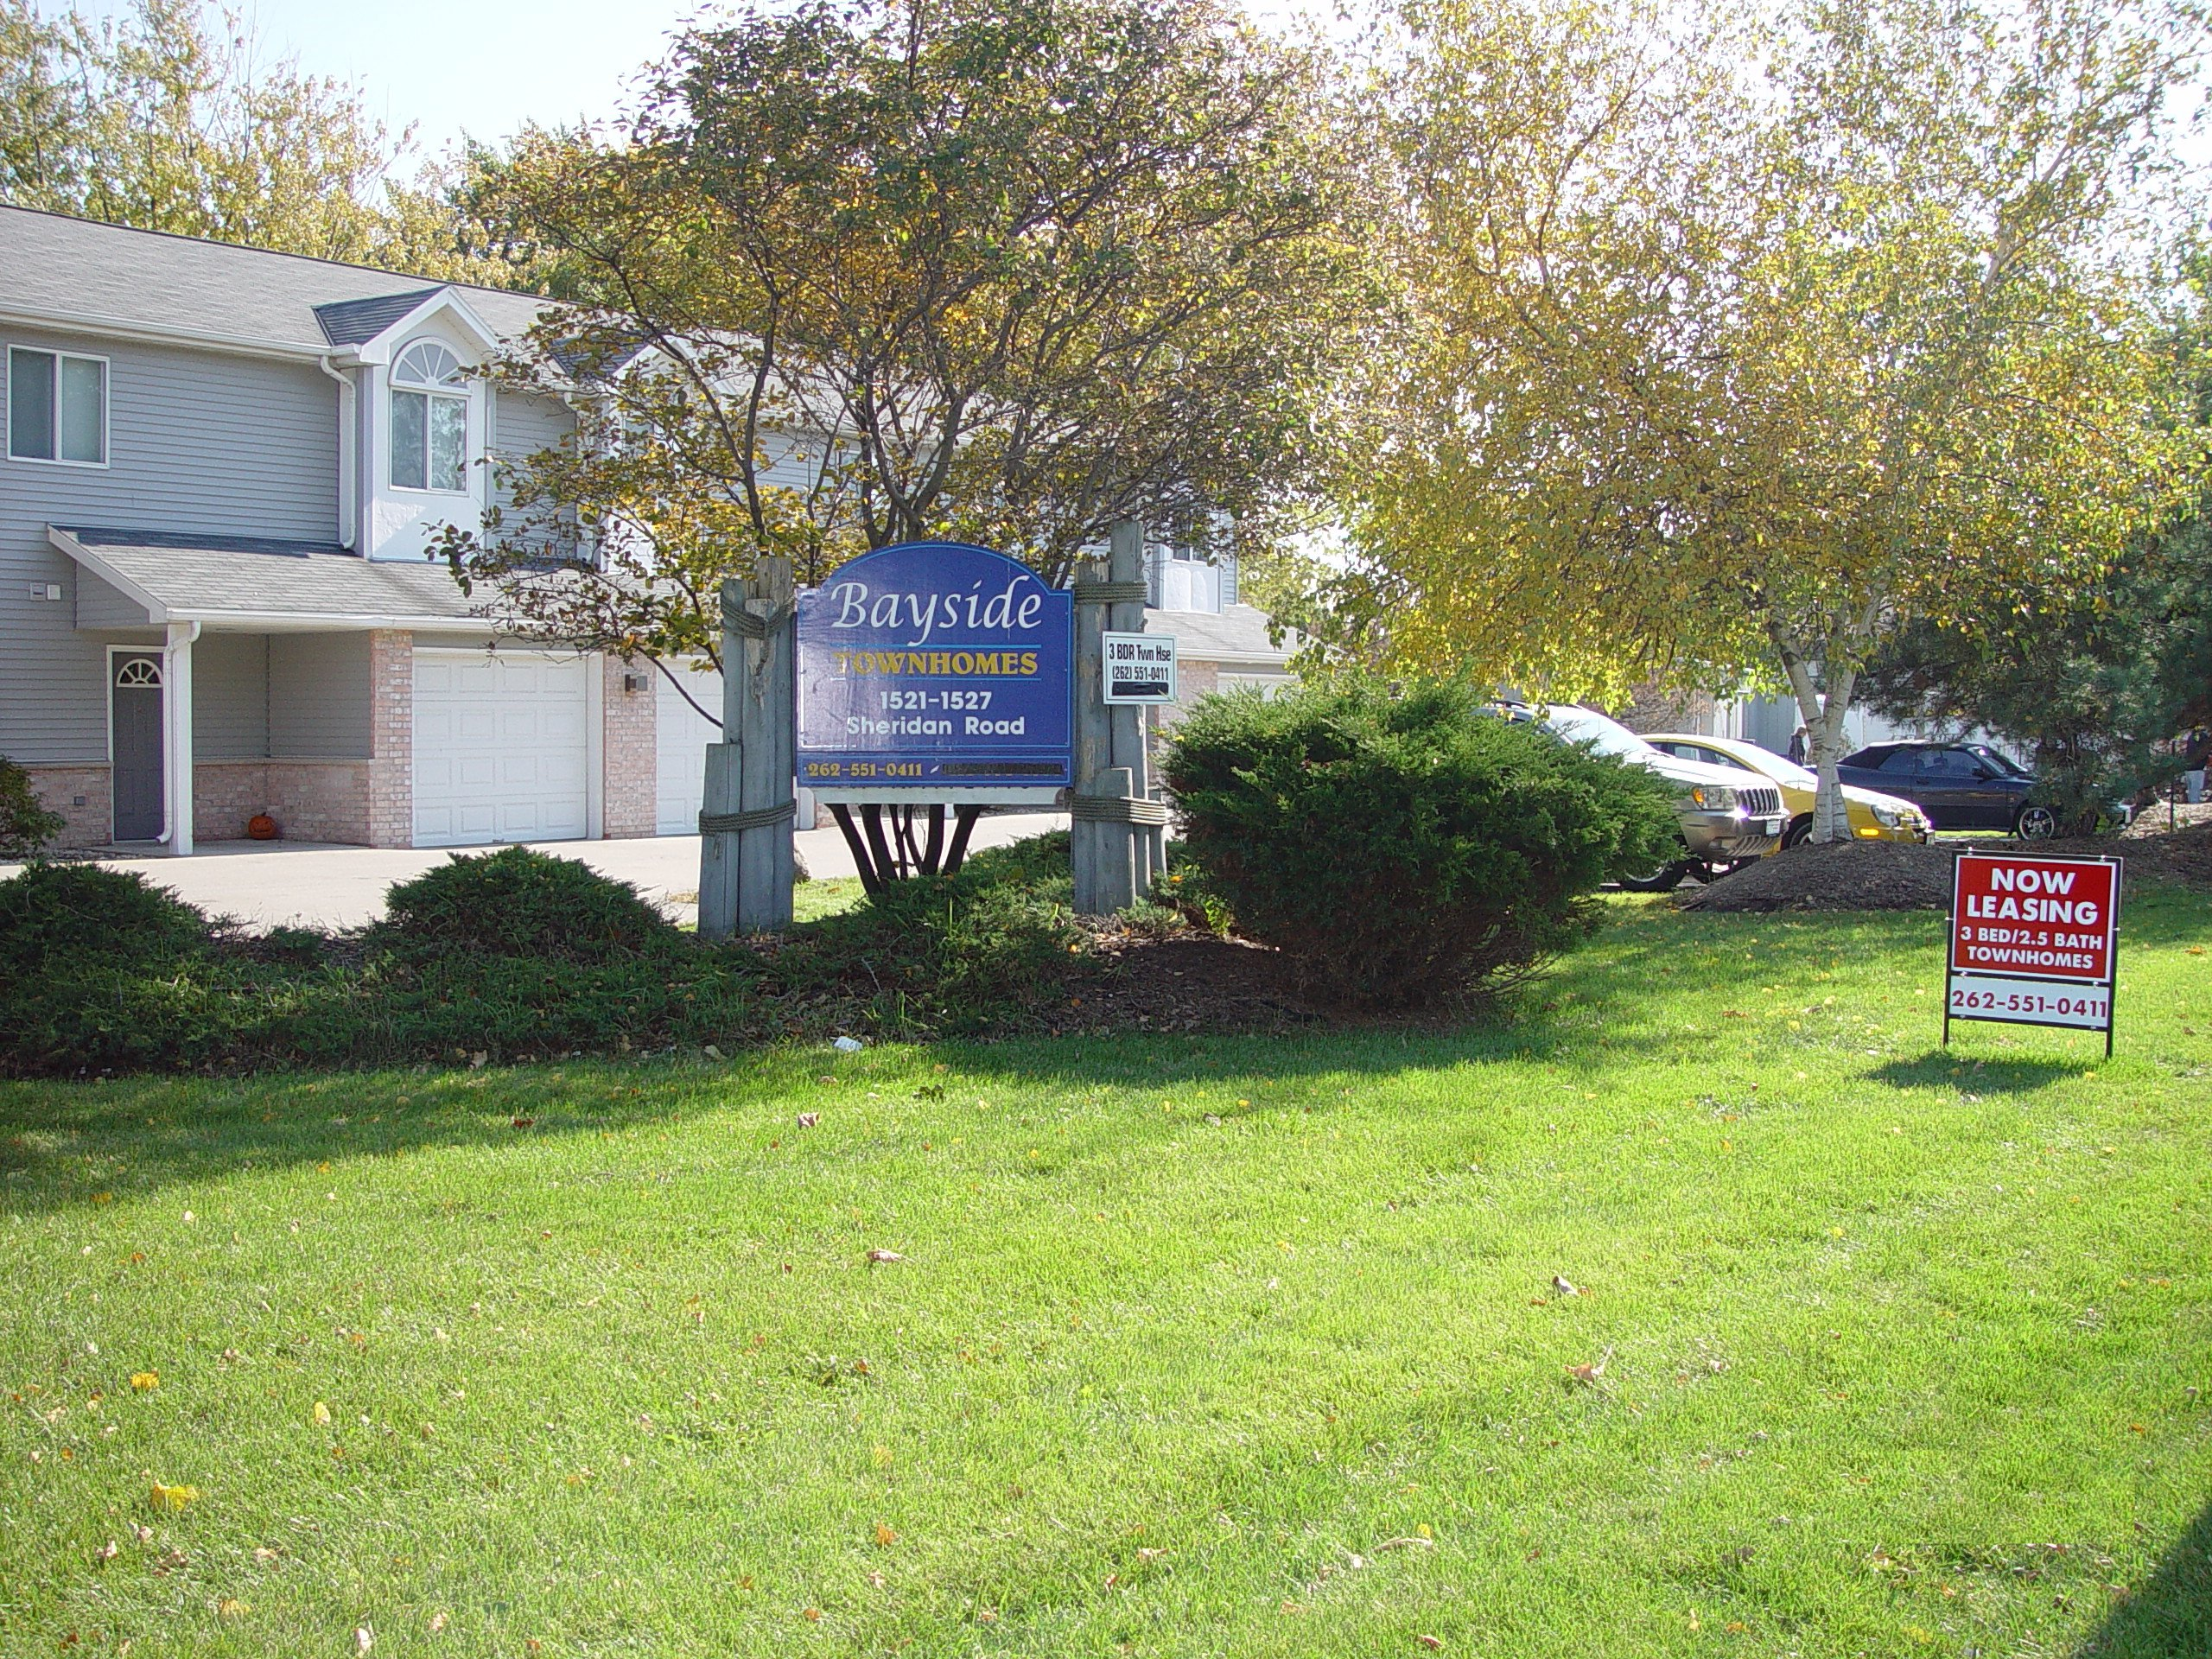 Bayside Townhomes | Wisconsin Lakefront Property Management